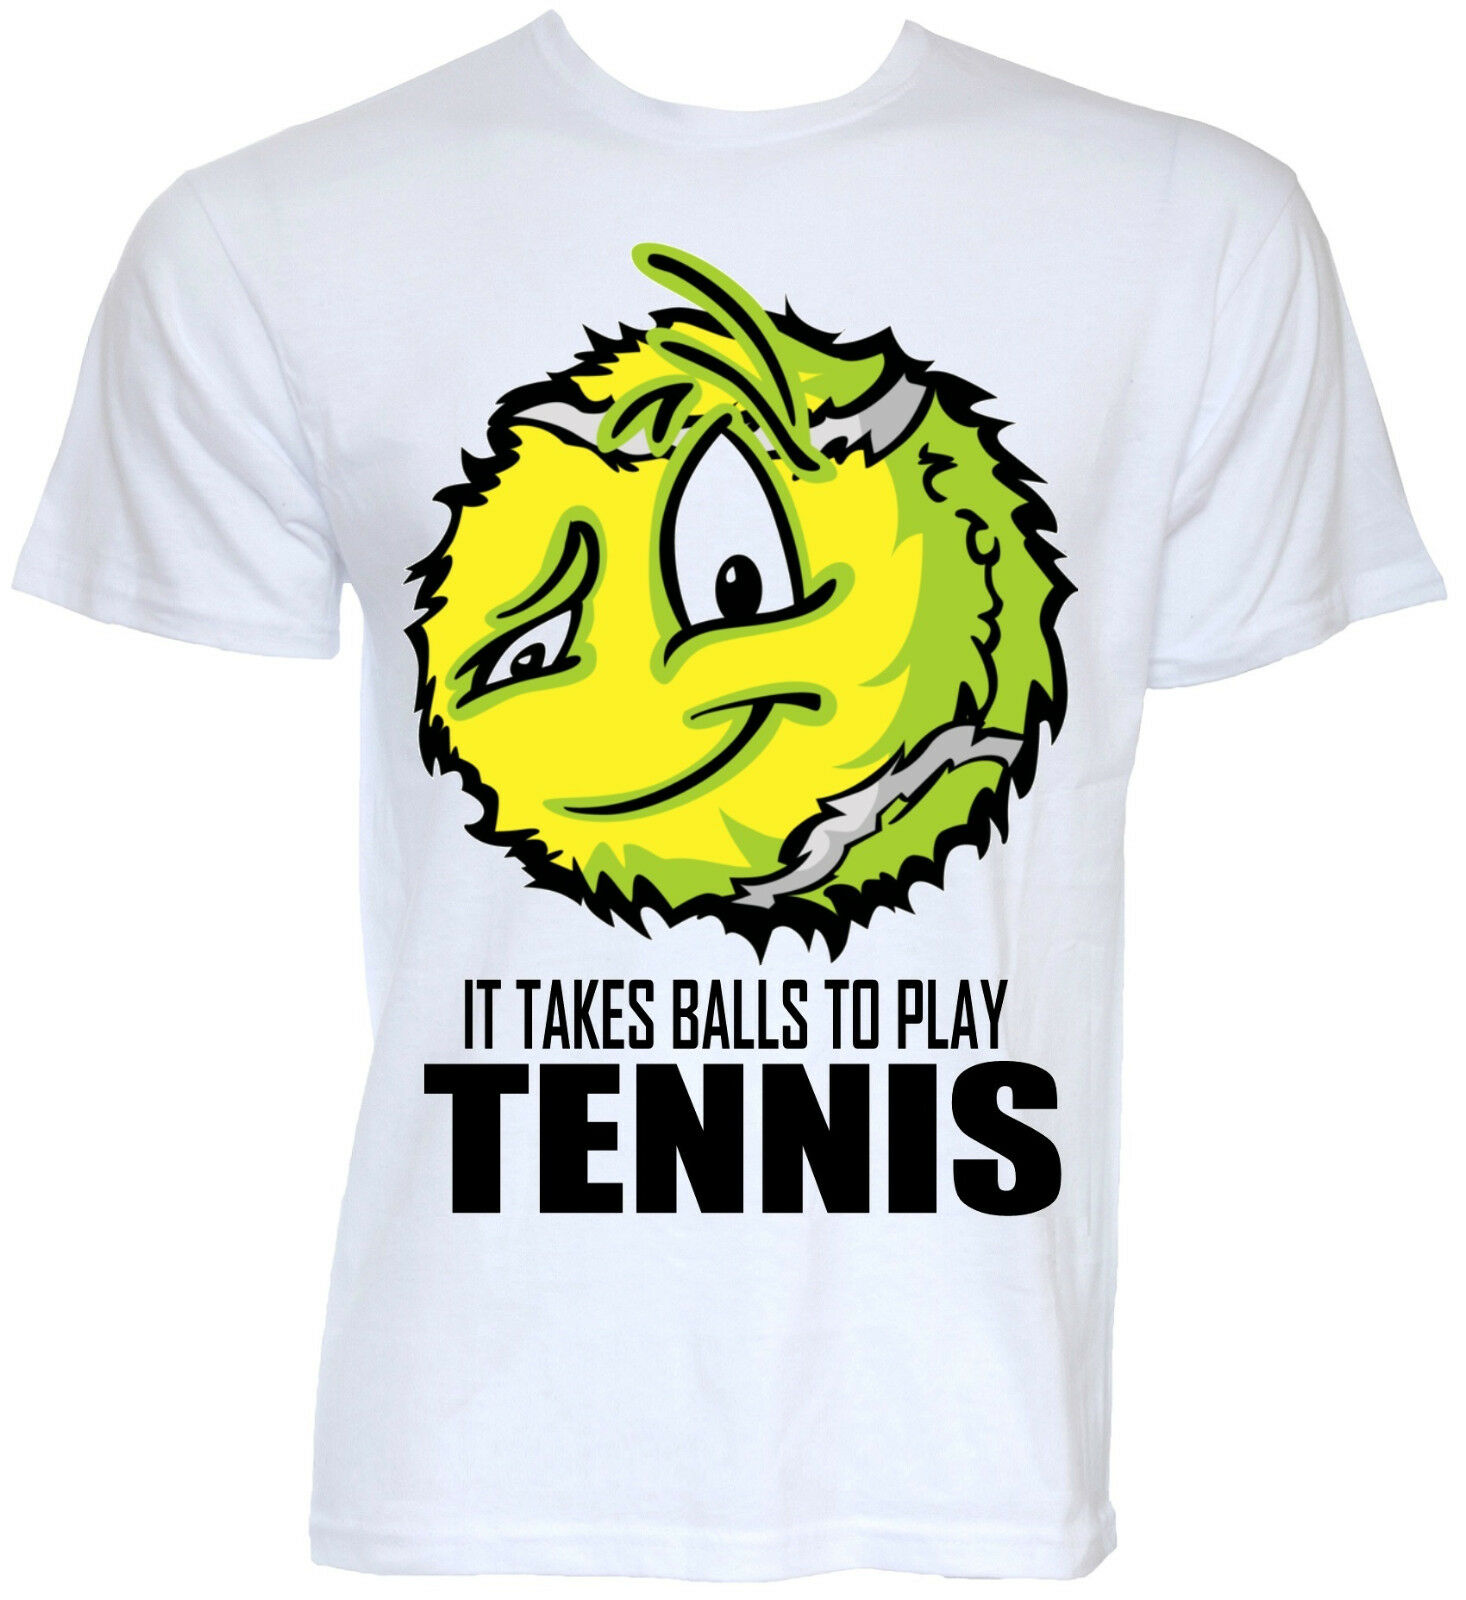 FUNNY TENNIS T-SHIRTS MENS COOL NOVELTY BALLS SLOGAN JOKE ...